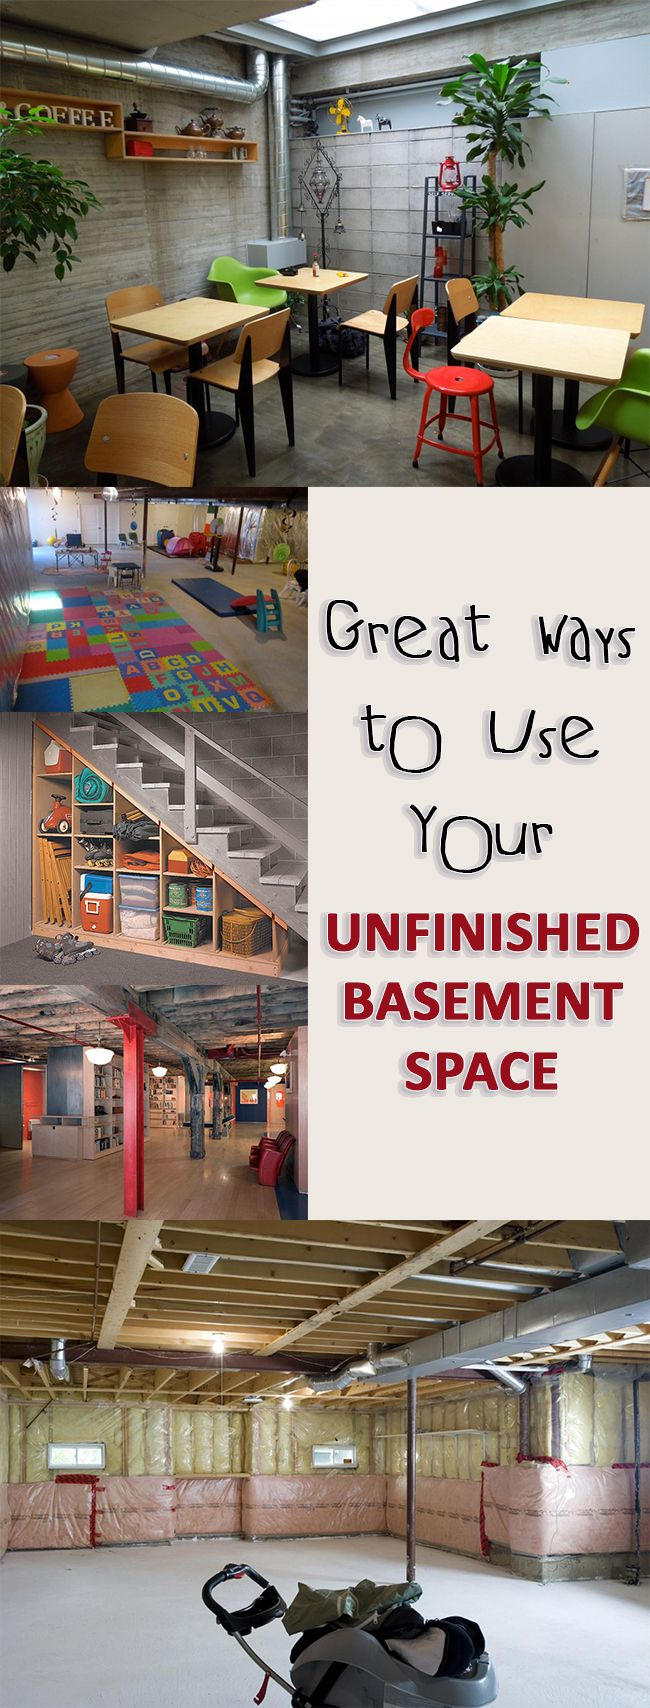 great ideas for unfinished basement space design house och inspiration. Black Bedroom Furniture Sets. Home Design Ideas